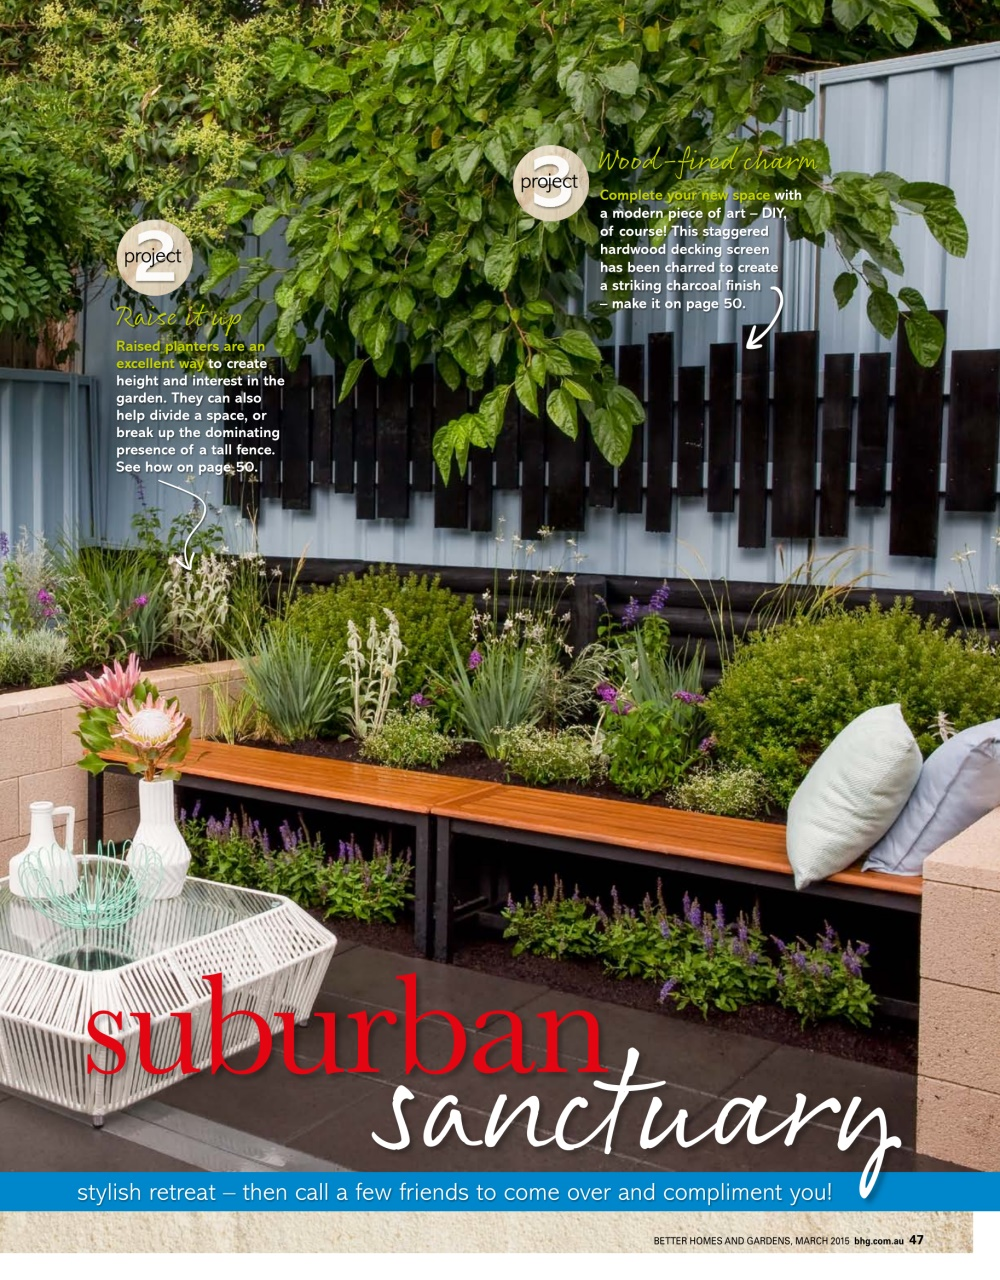 Better homes and gardens australia march 2015 Better homes and gardens march